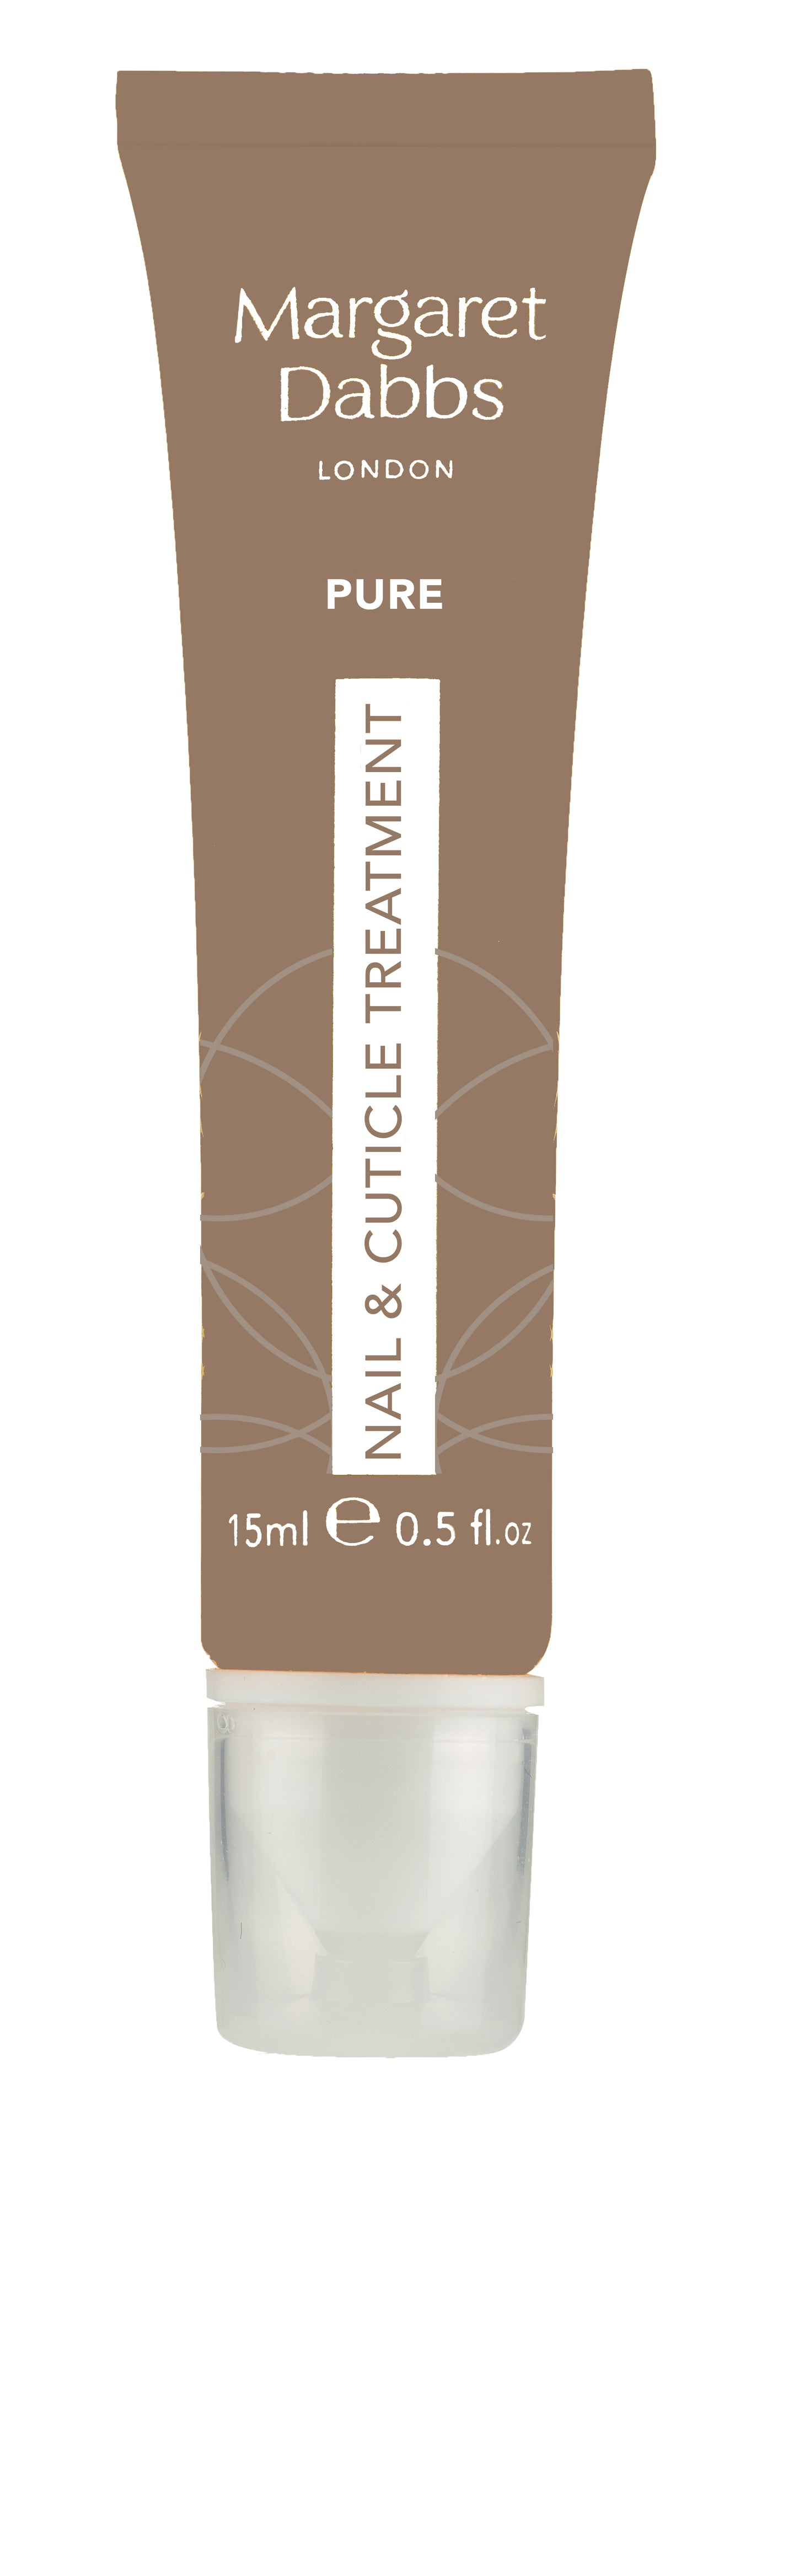 PURE Repairing Nail & Cuticle Serum Pen